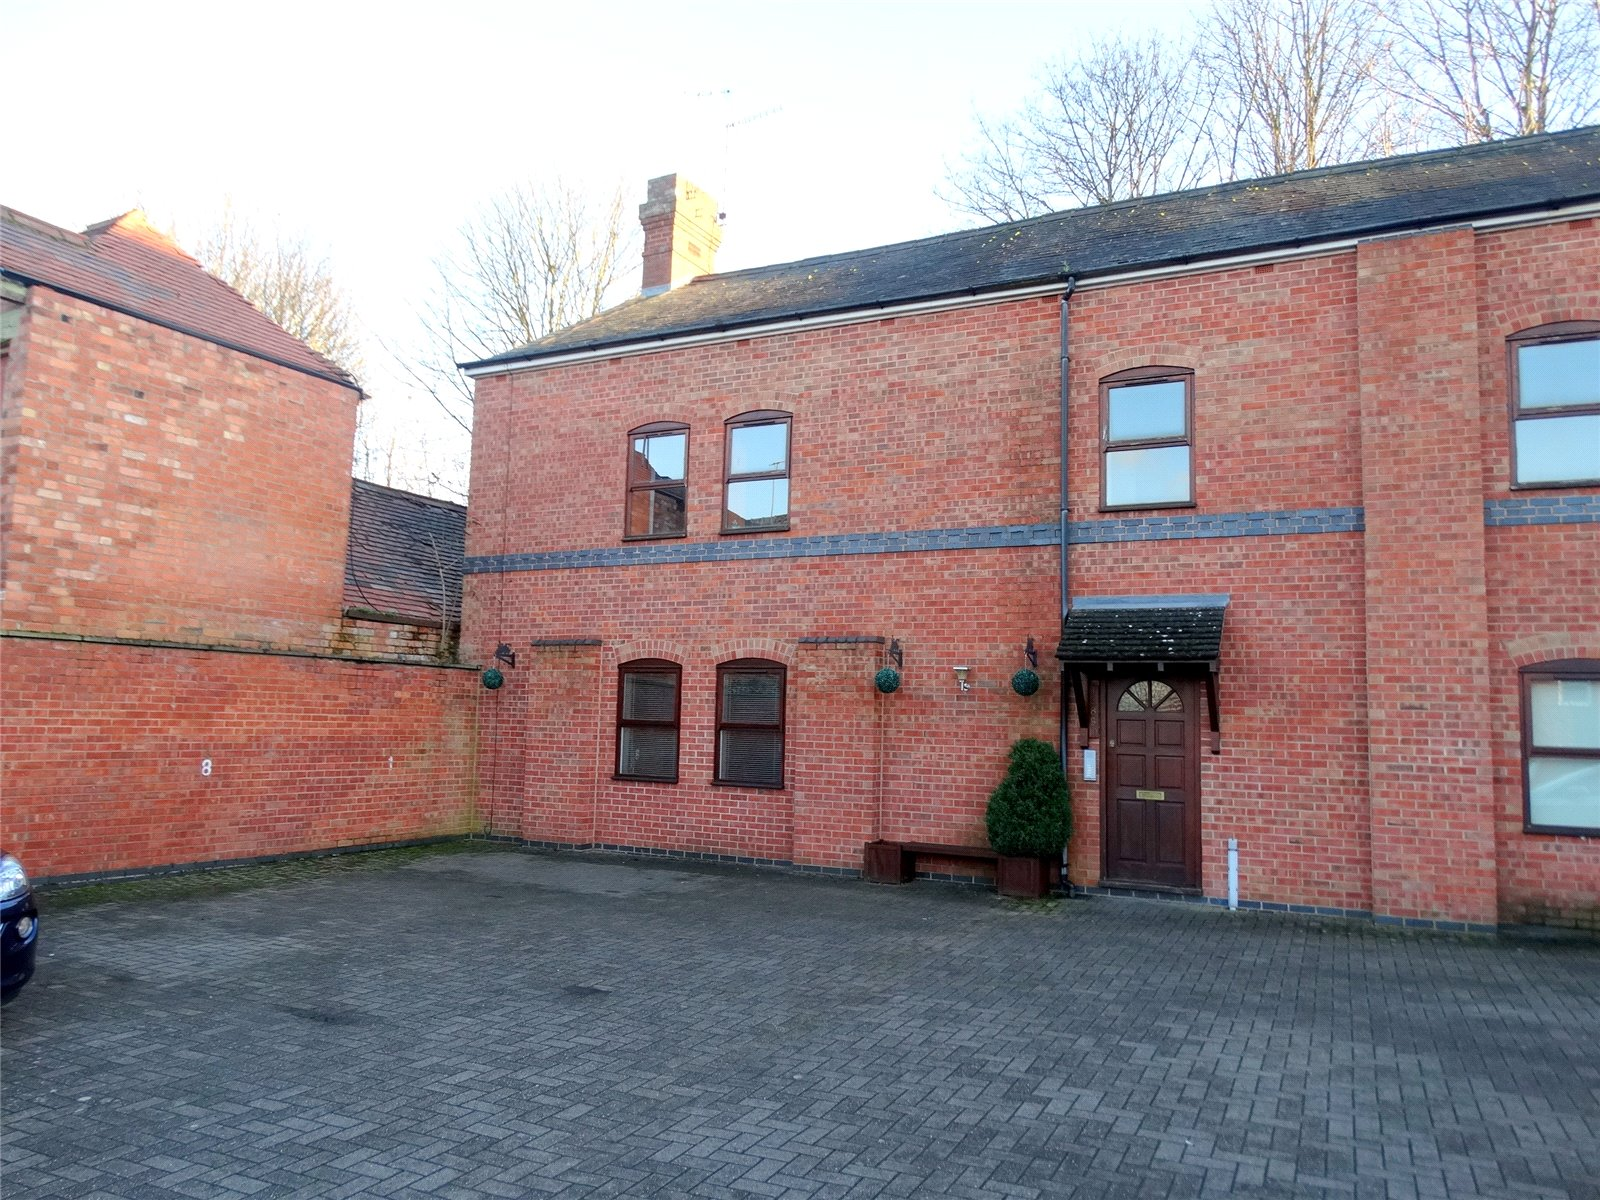 1 Bedroom Flat for sale in Arboretum Mews Worcester Worcestershire WR1